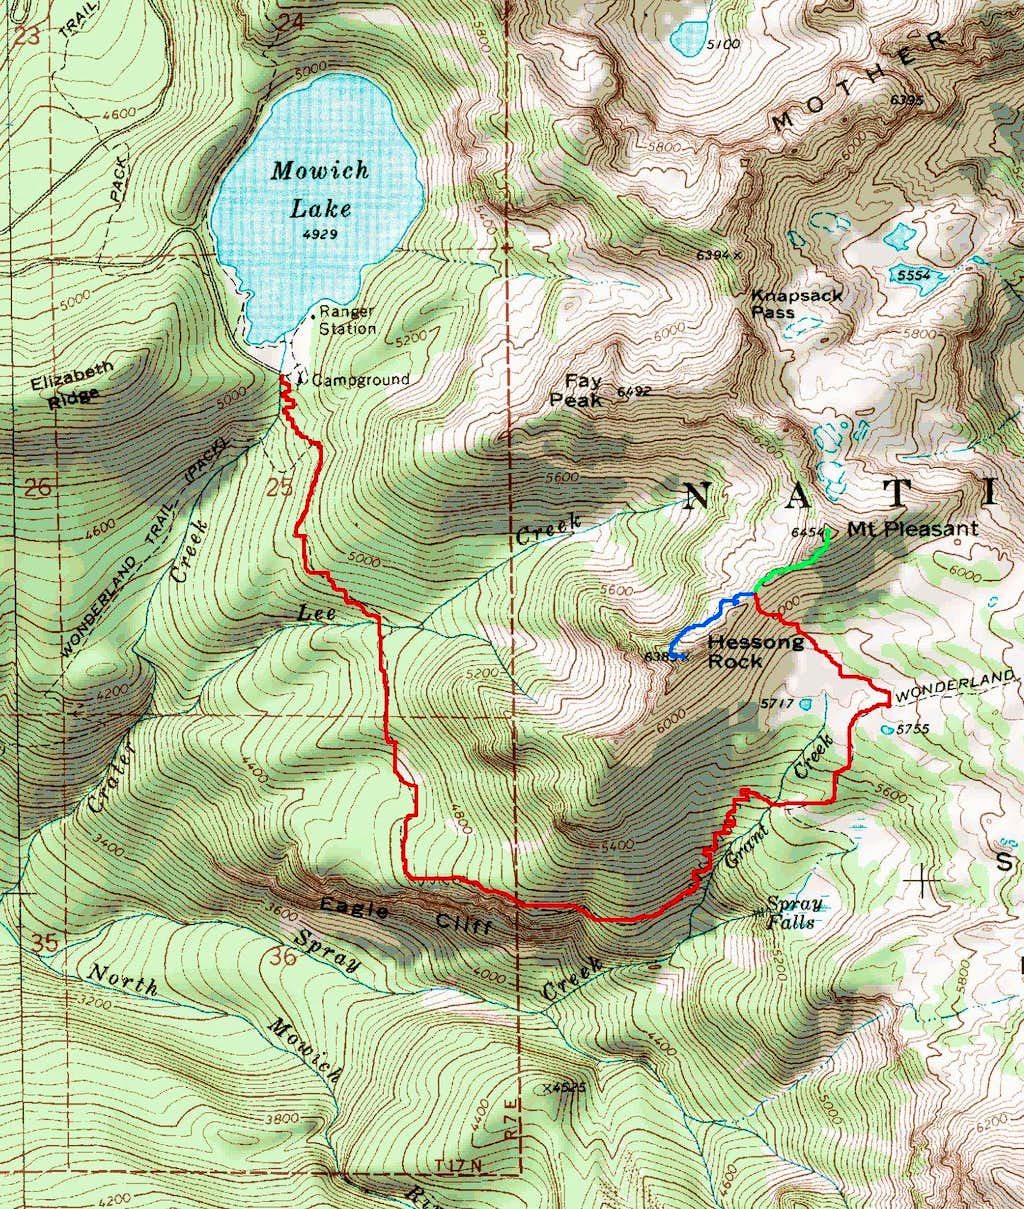 Route to Hessong Rock and Mount Pleasant